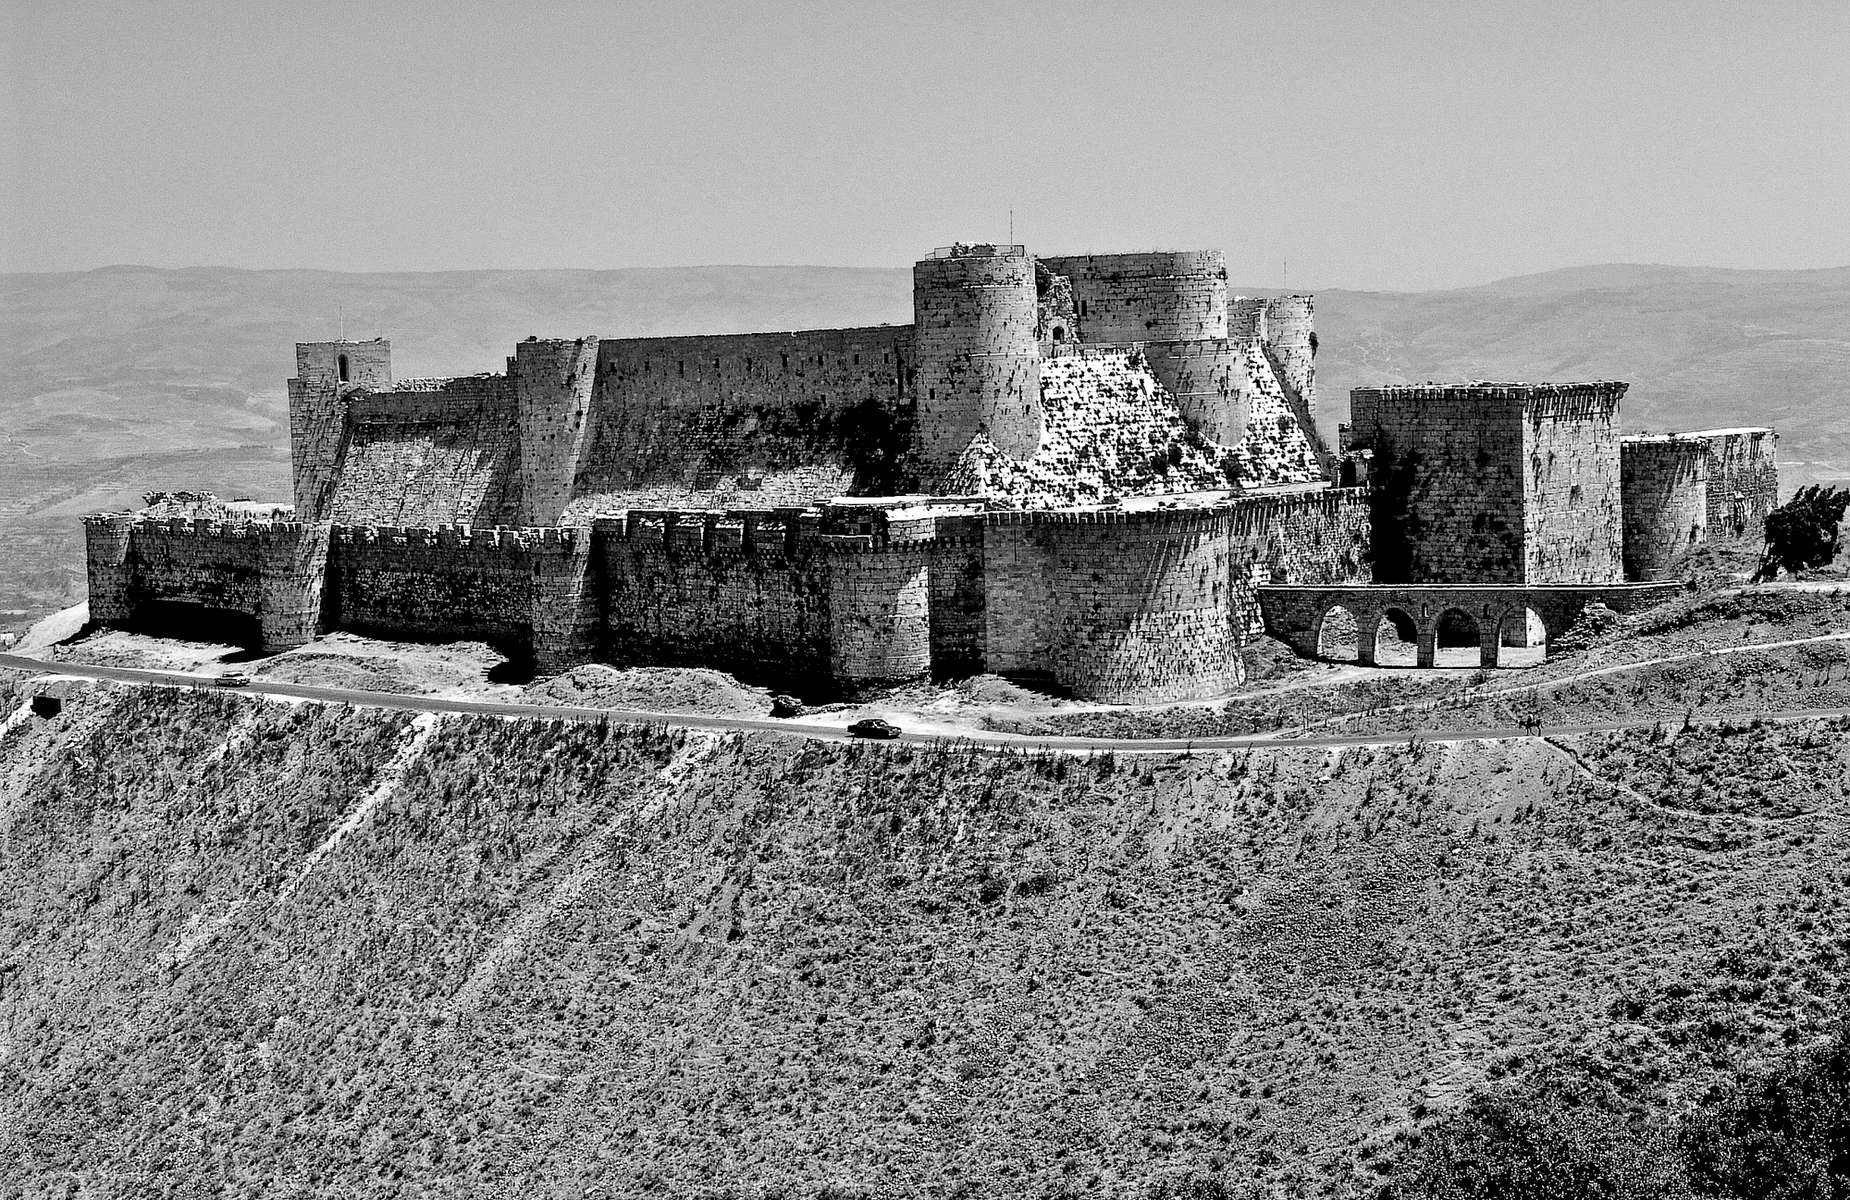 Crusader-era fortress of Crac des Chevaliers.